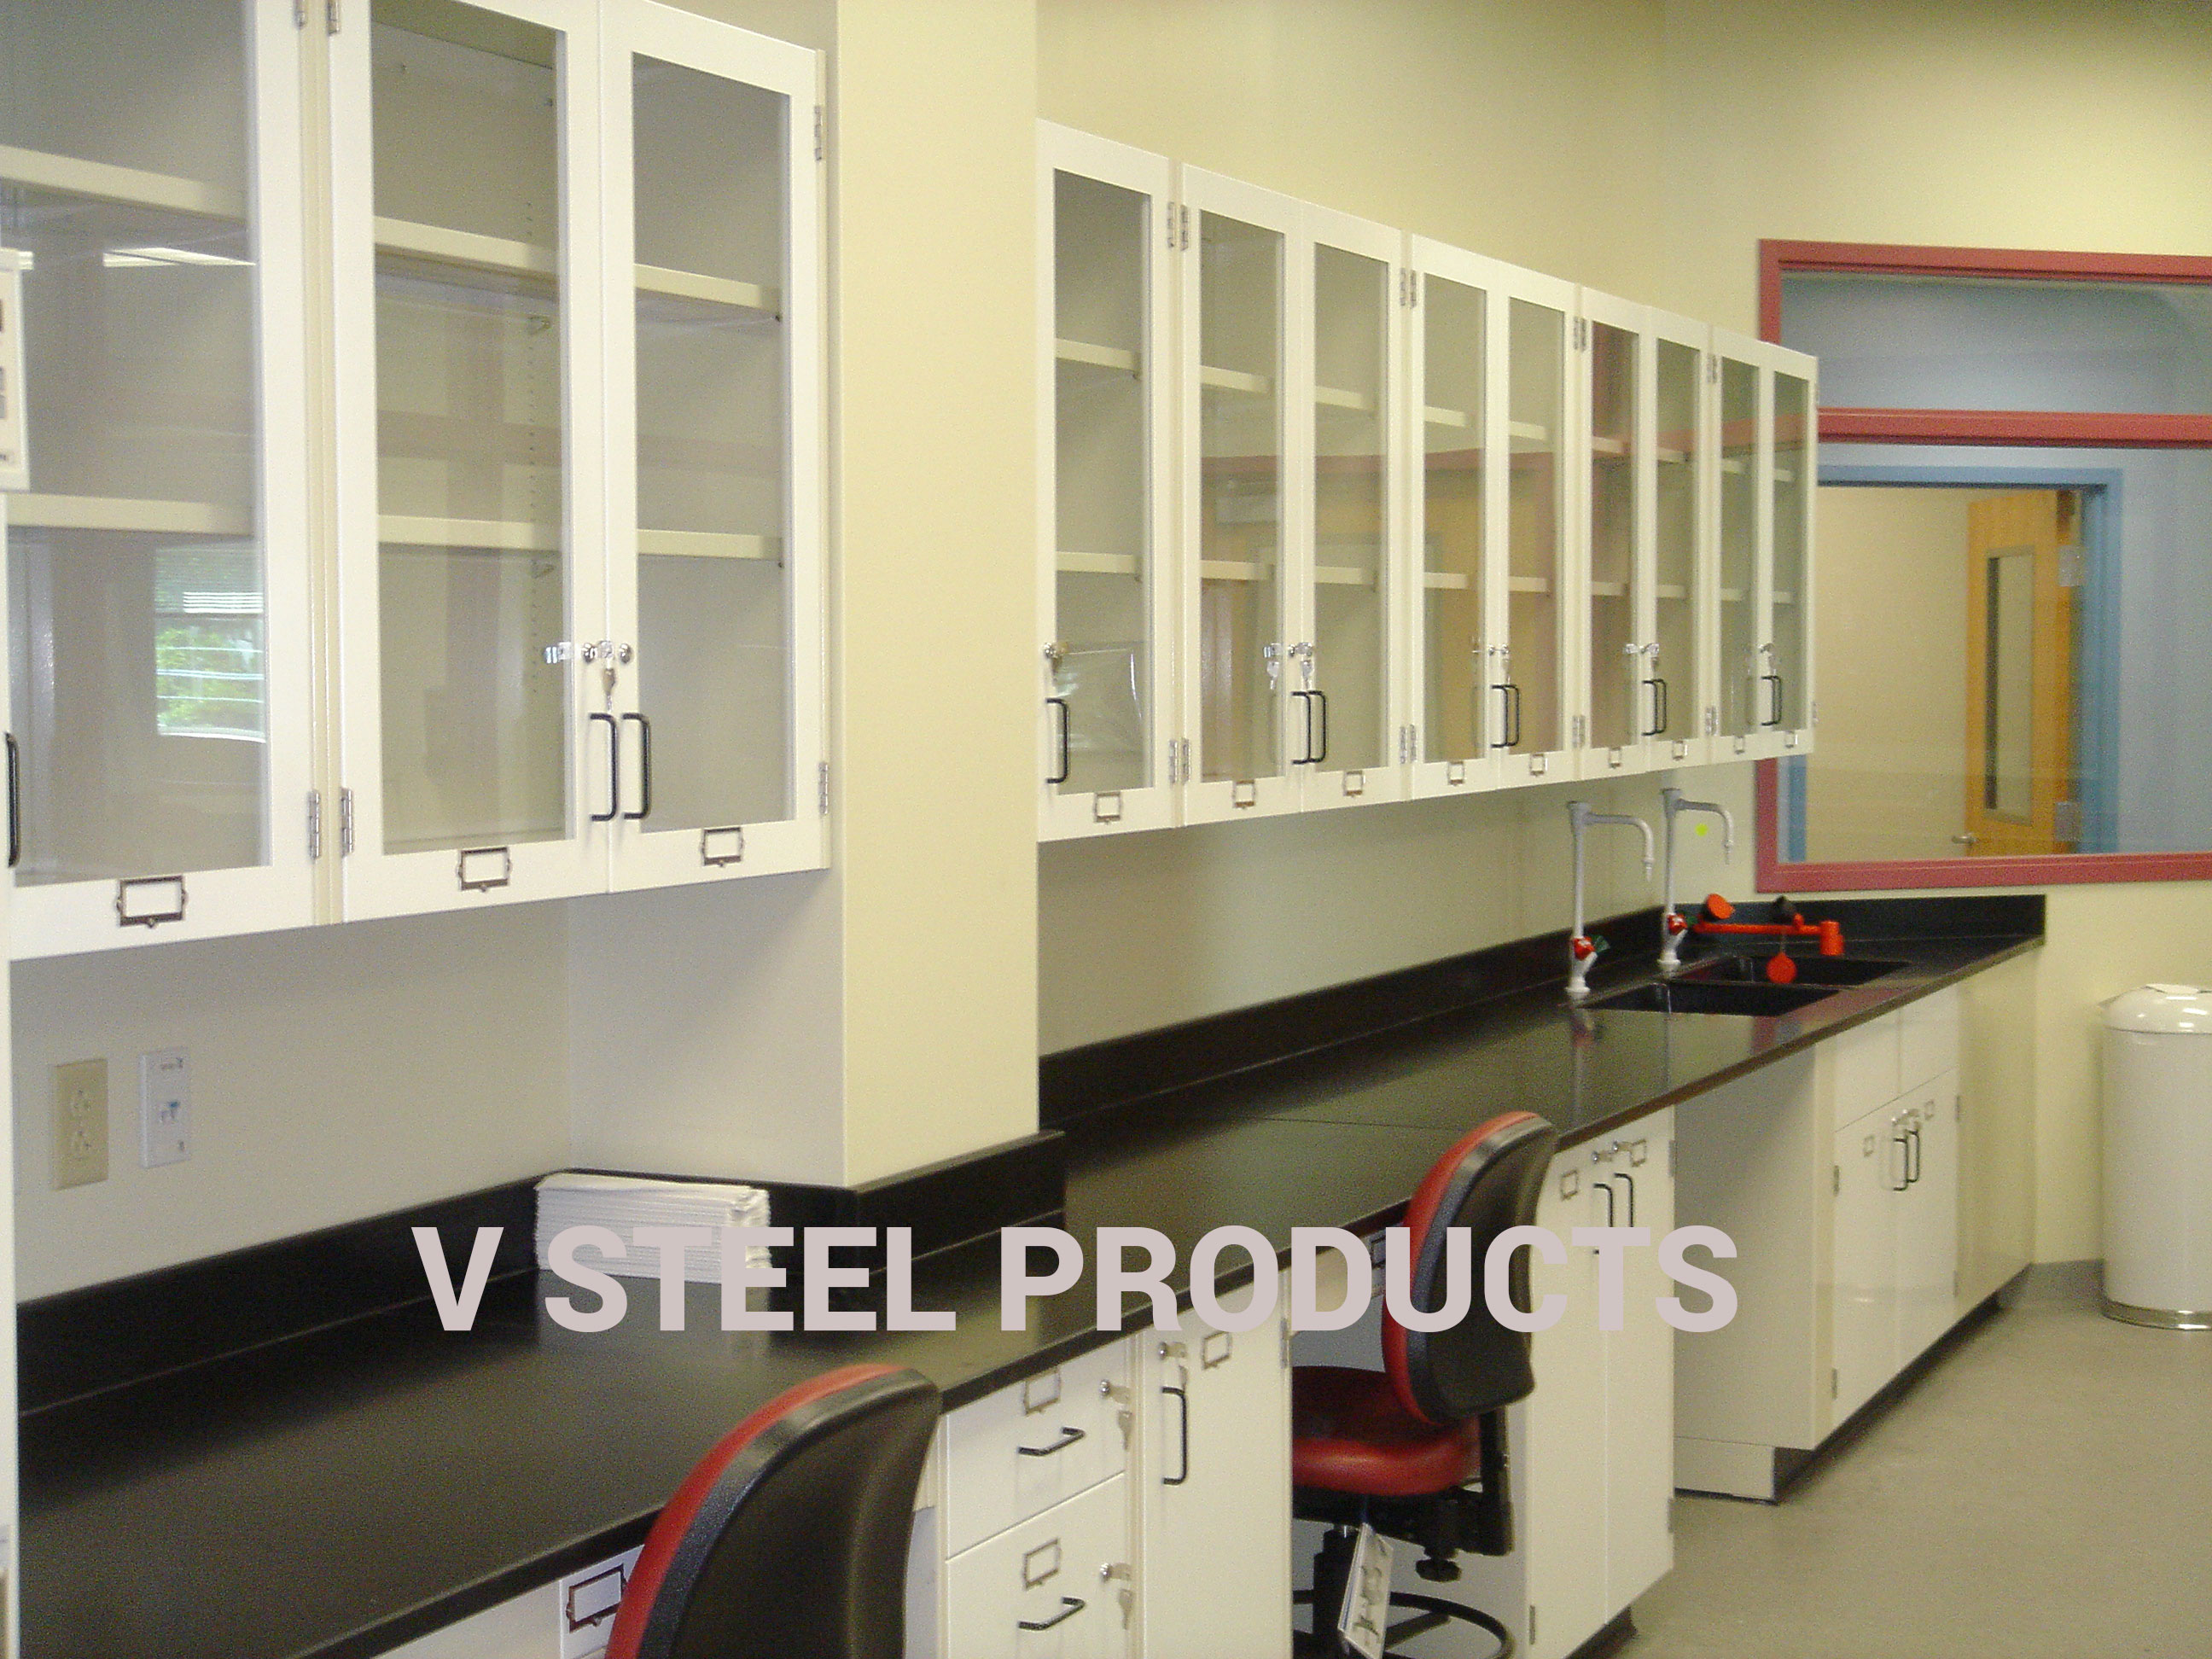 Wall Benches and Overhead Storage Units